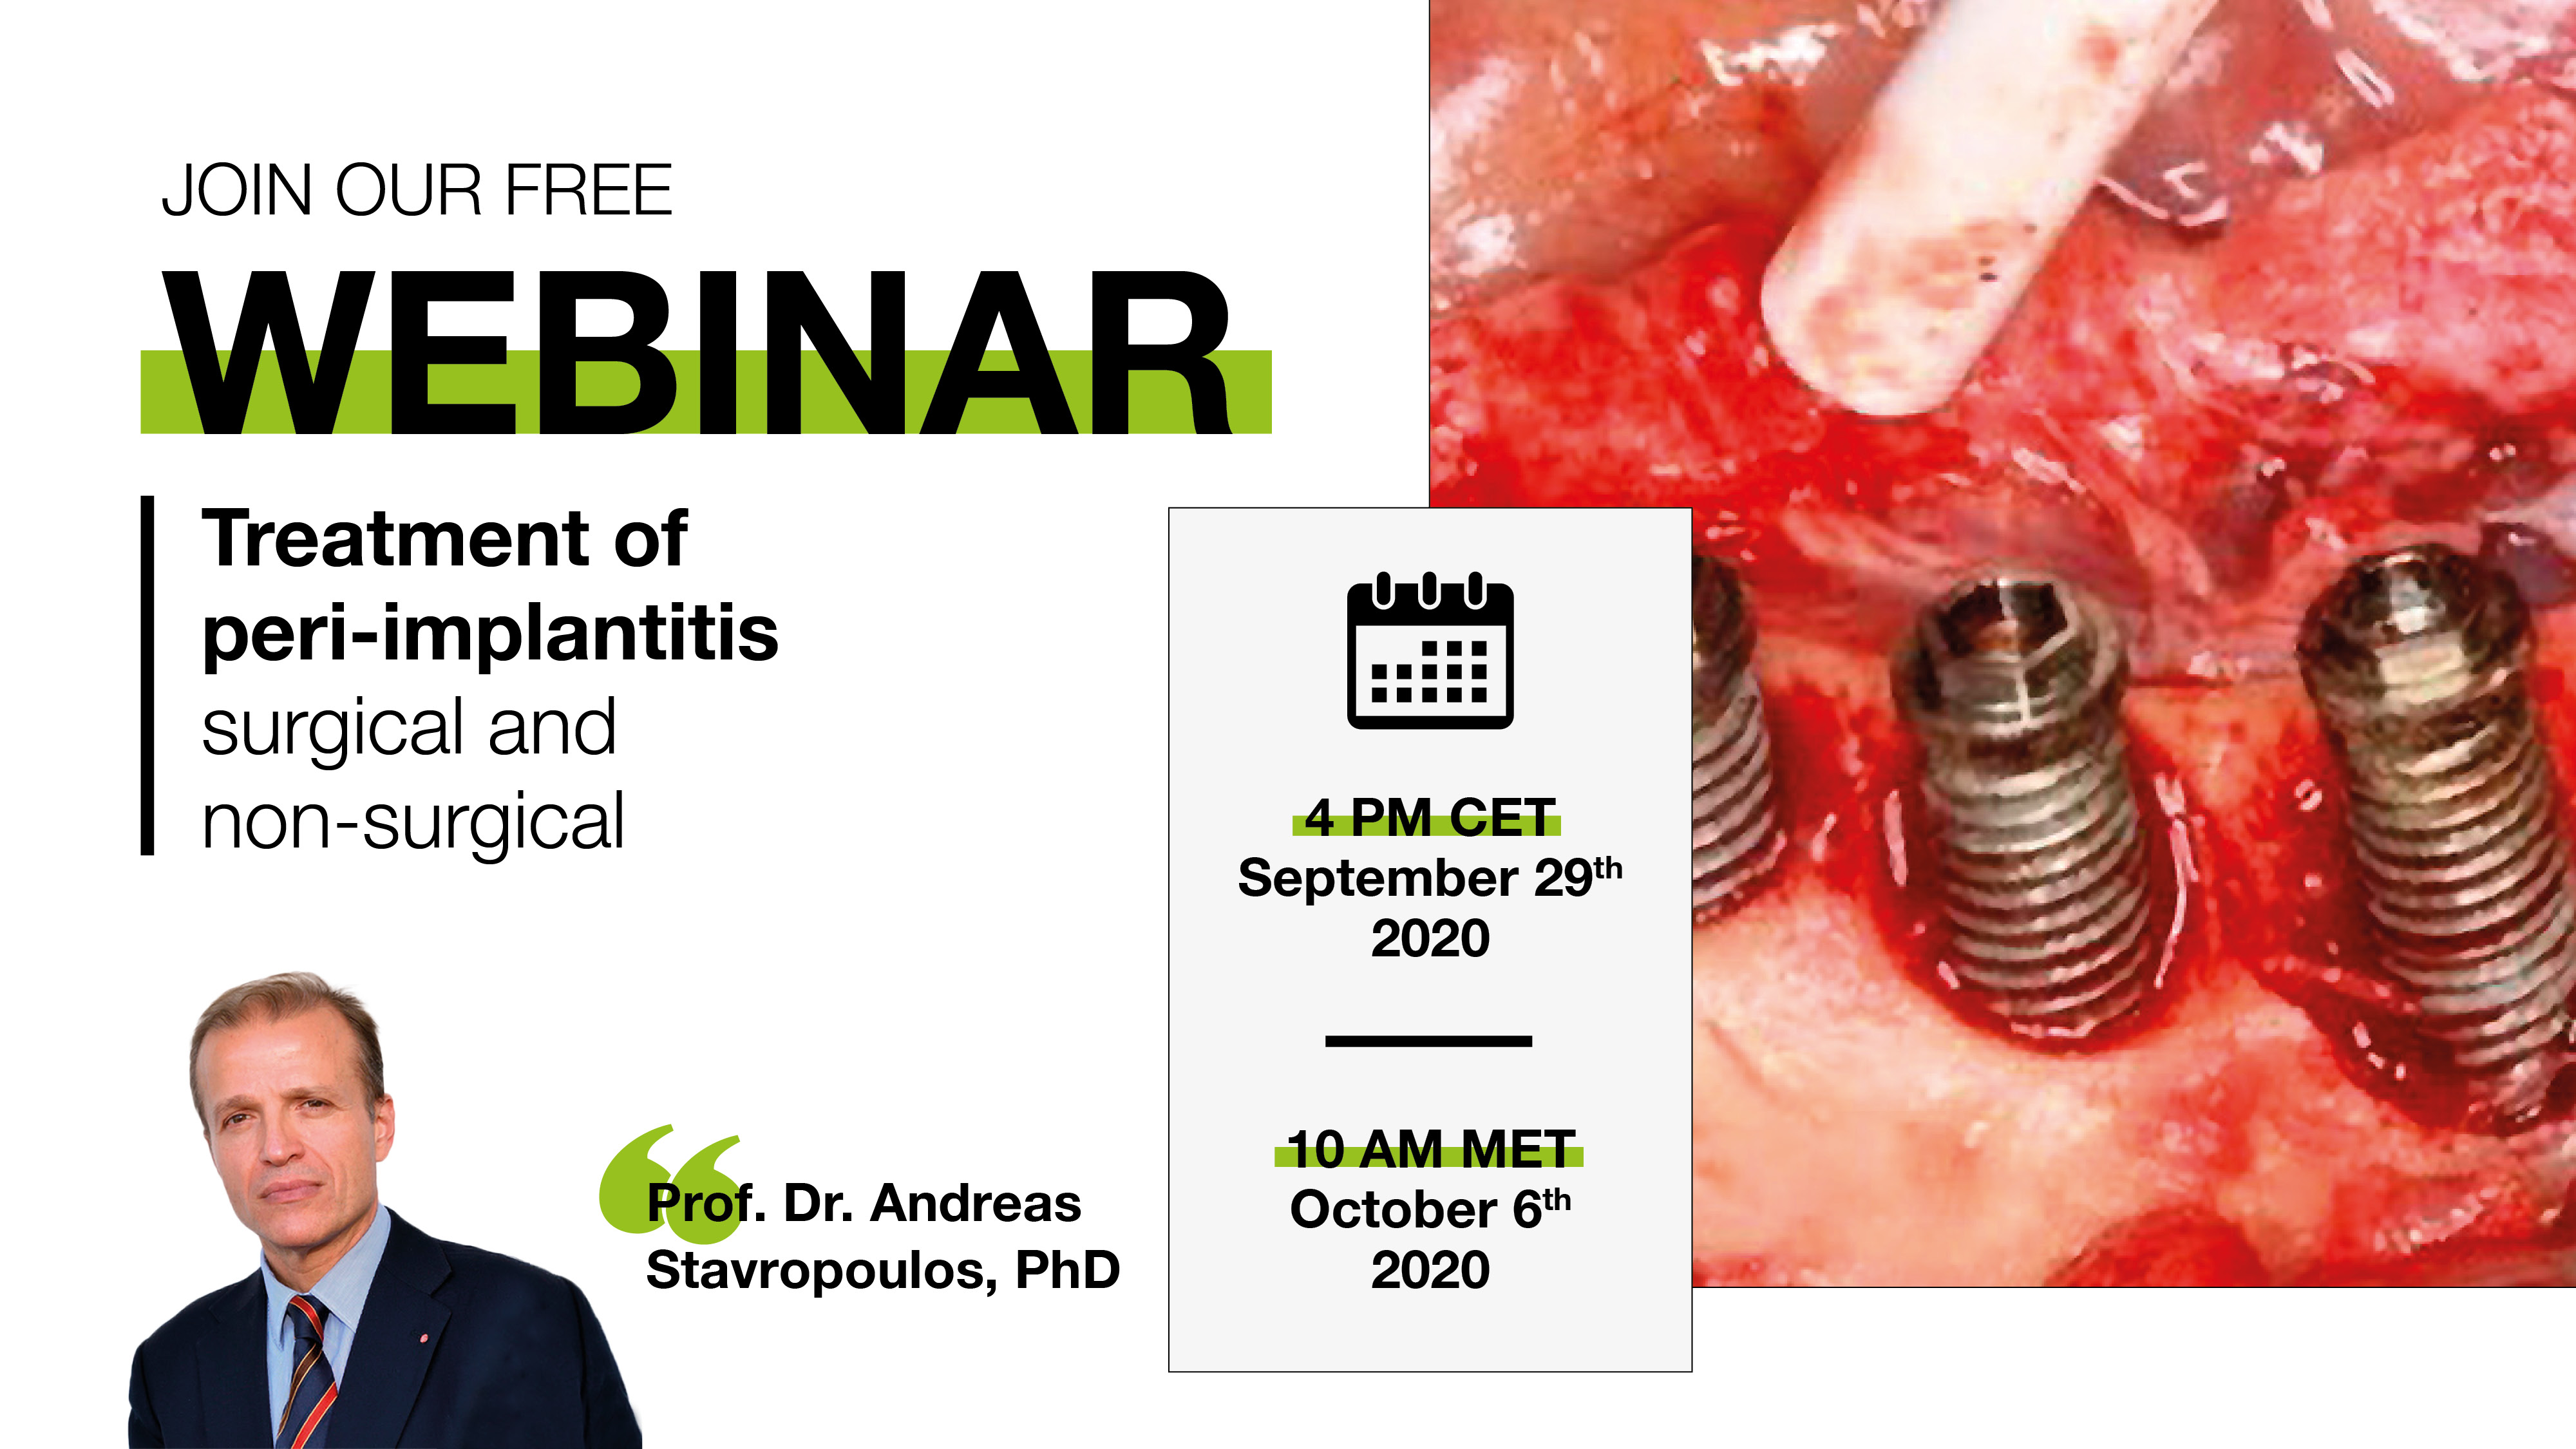 """Treatment of peri-implantitis surgical and non-surgical"" by Prof. Dr. Andreas Stavropoulos, PhD"